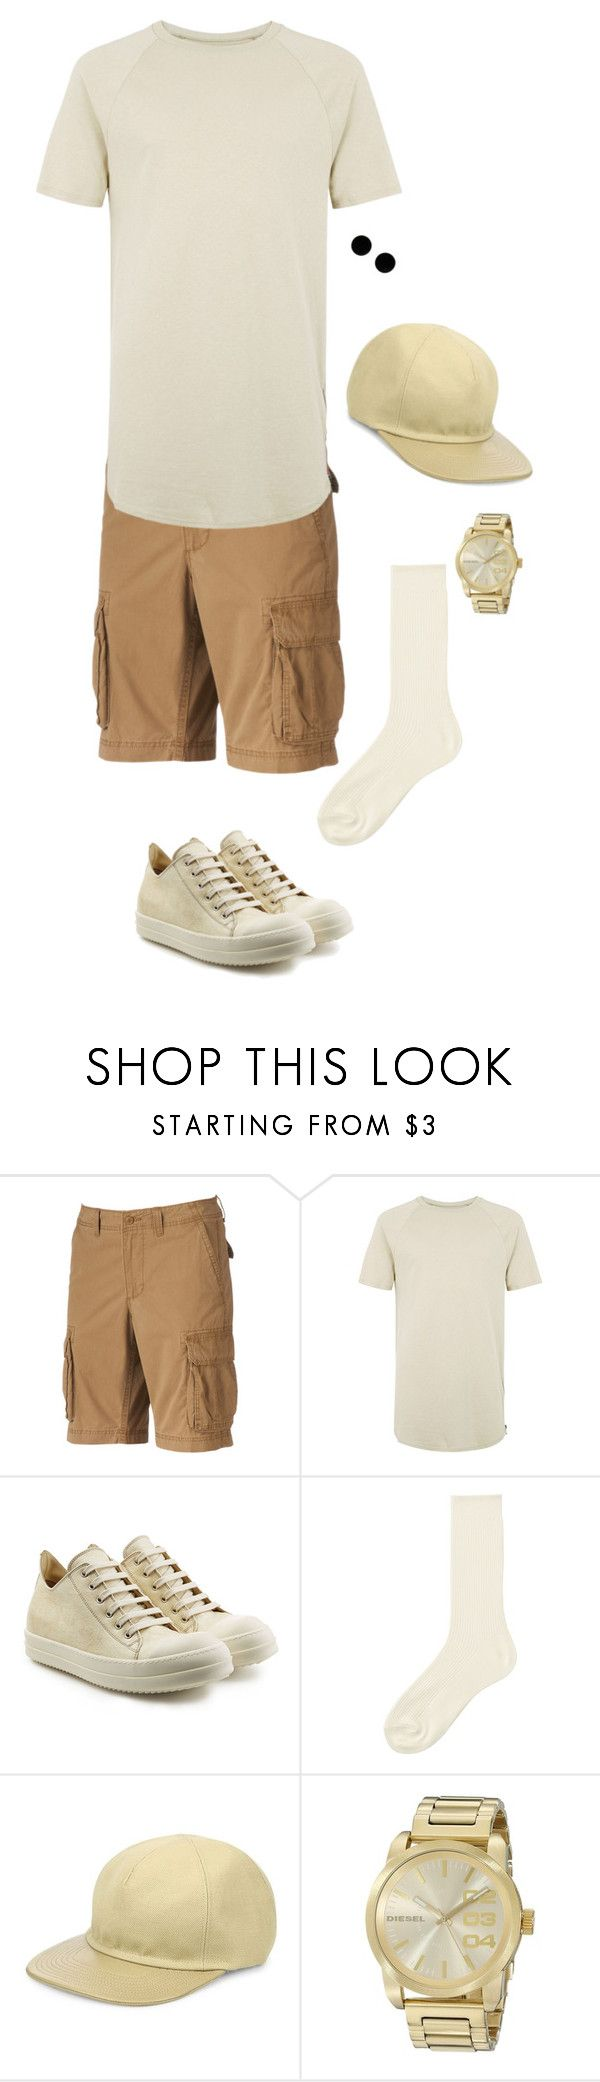 """Untitled #1788"" by dance4ever1222 ❤ liked on Polyvore featuring SONOMA Goods for Life, Topman, Rick Owens, Uniqlo, Balmain, Diesel, MM6 Maison Margiela, men's fashion and menswear"